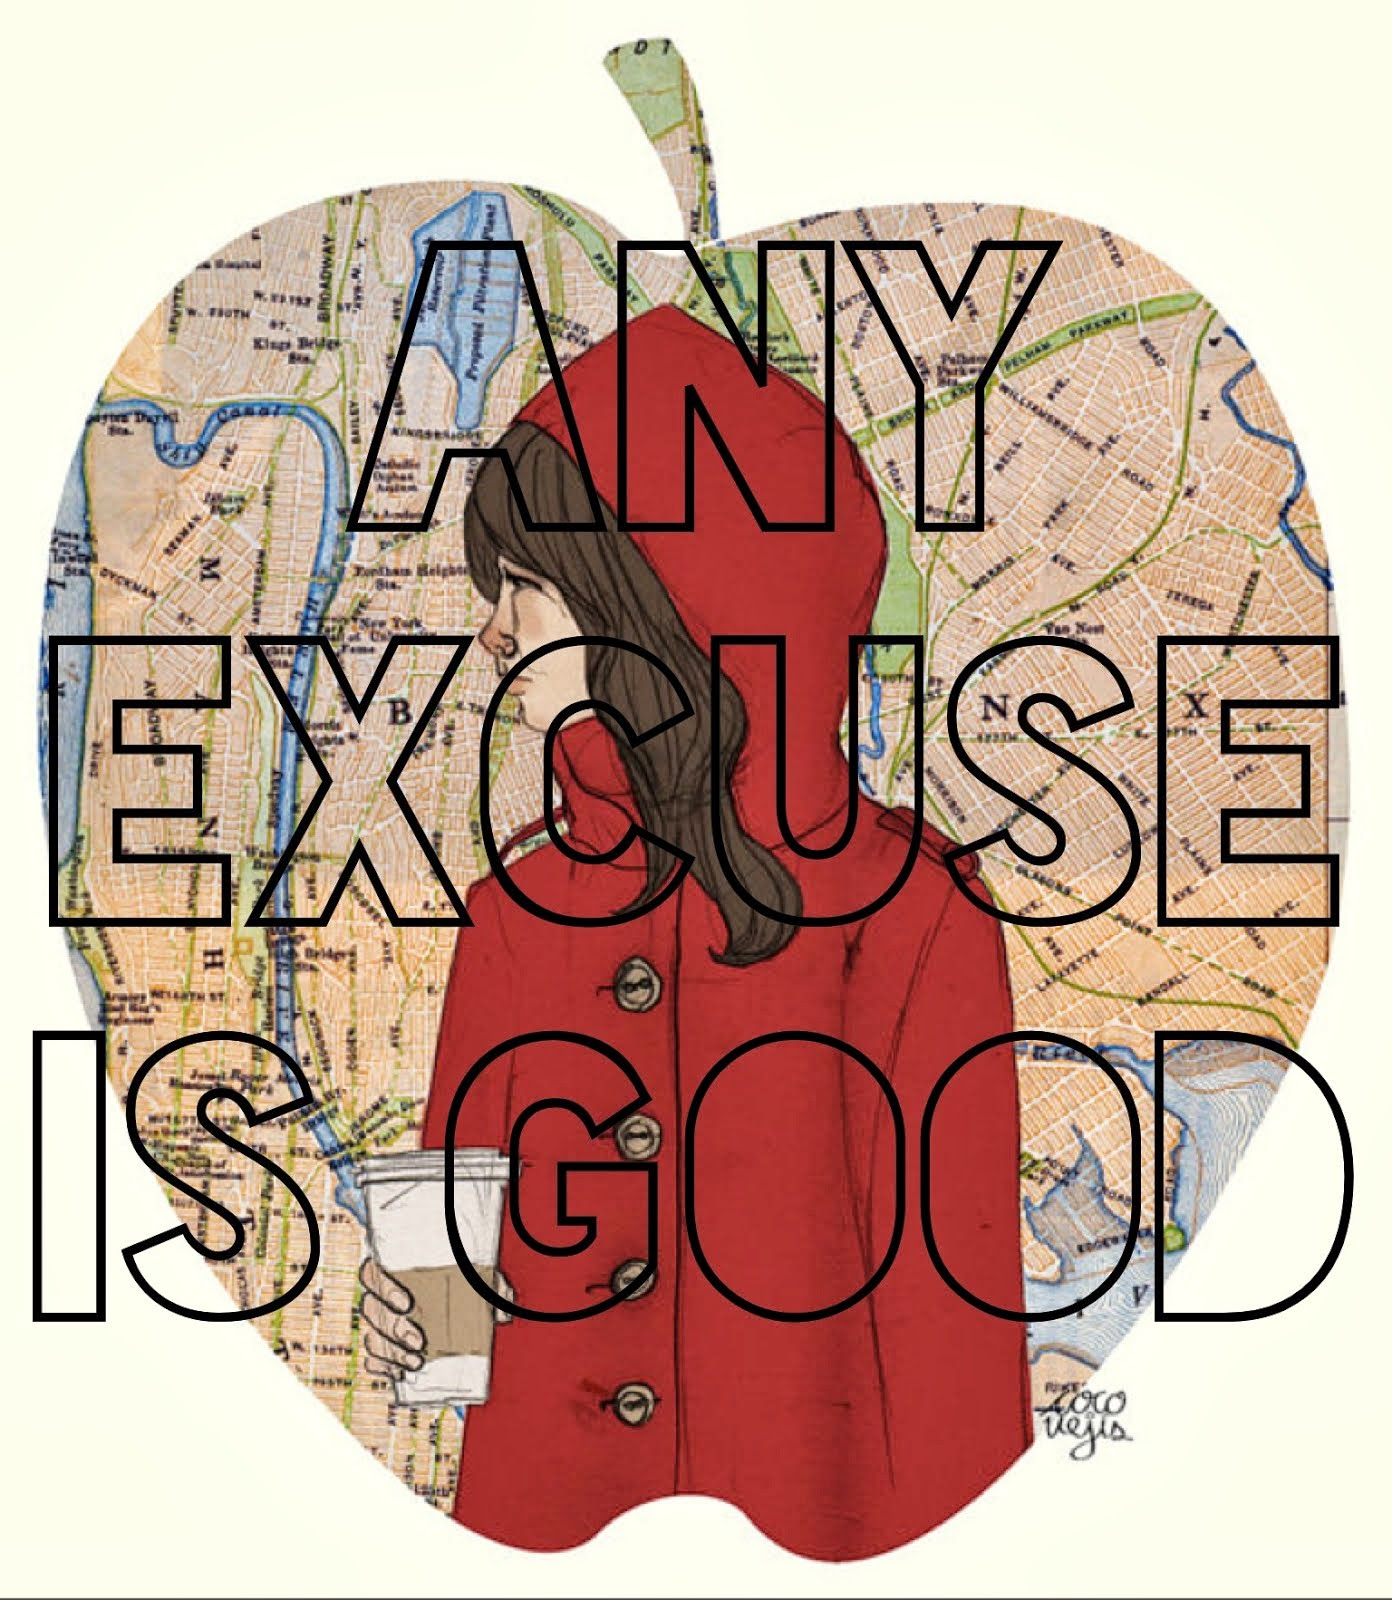 ♥ANY EXCUSE IS GOOD♥